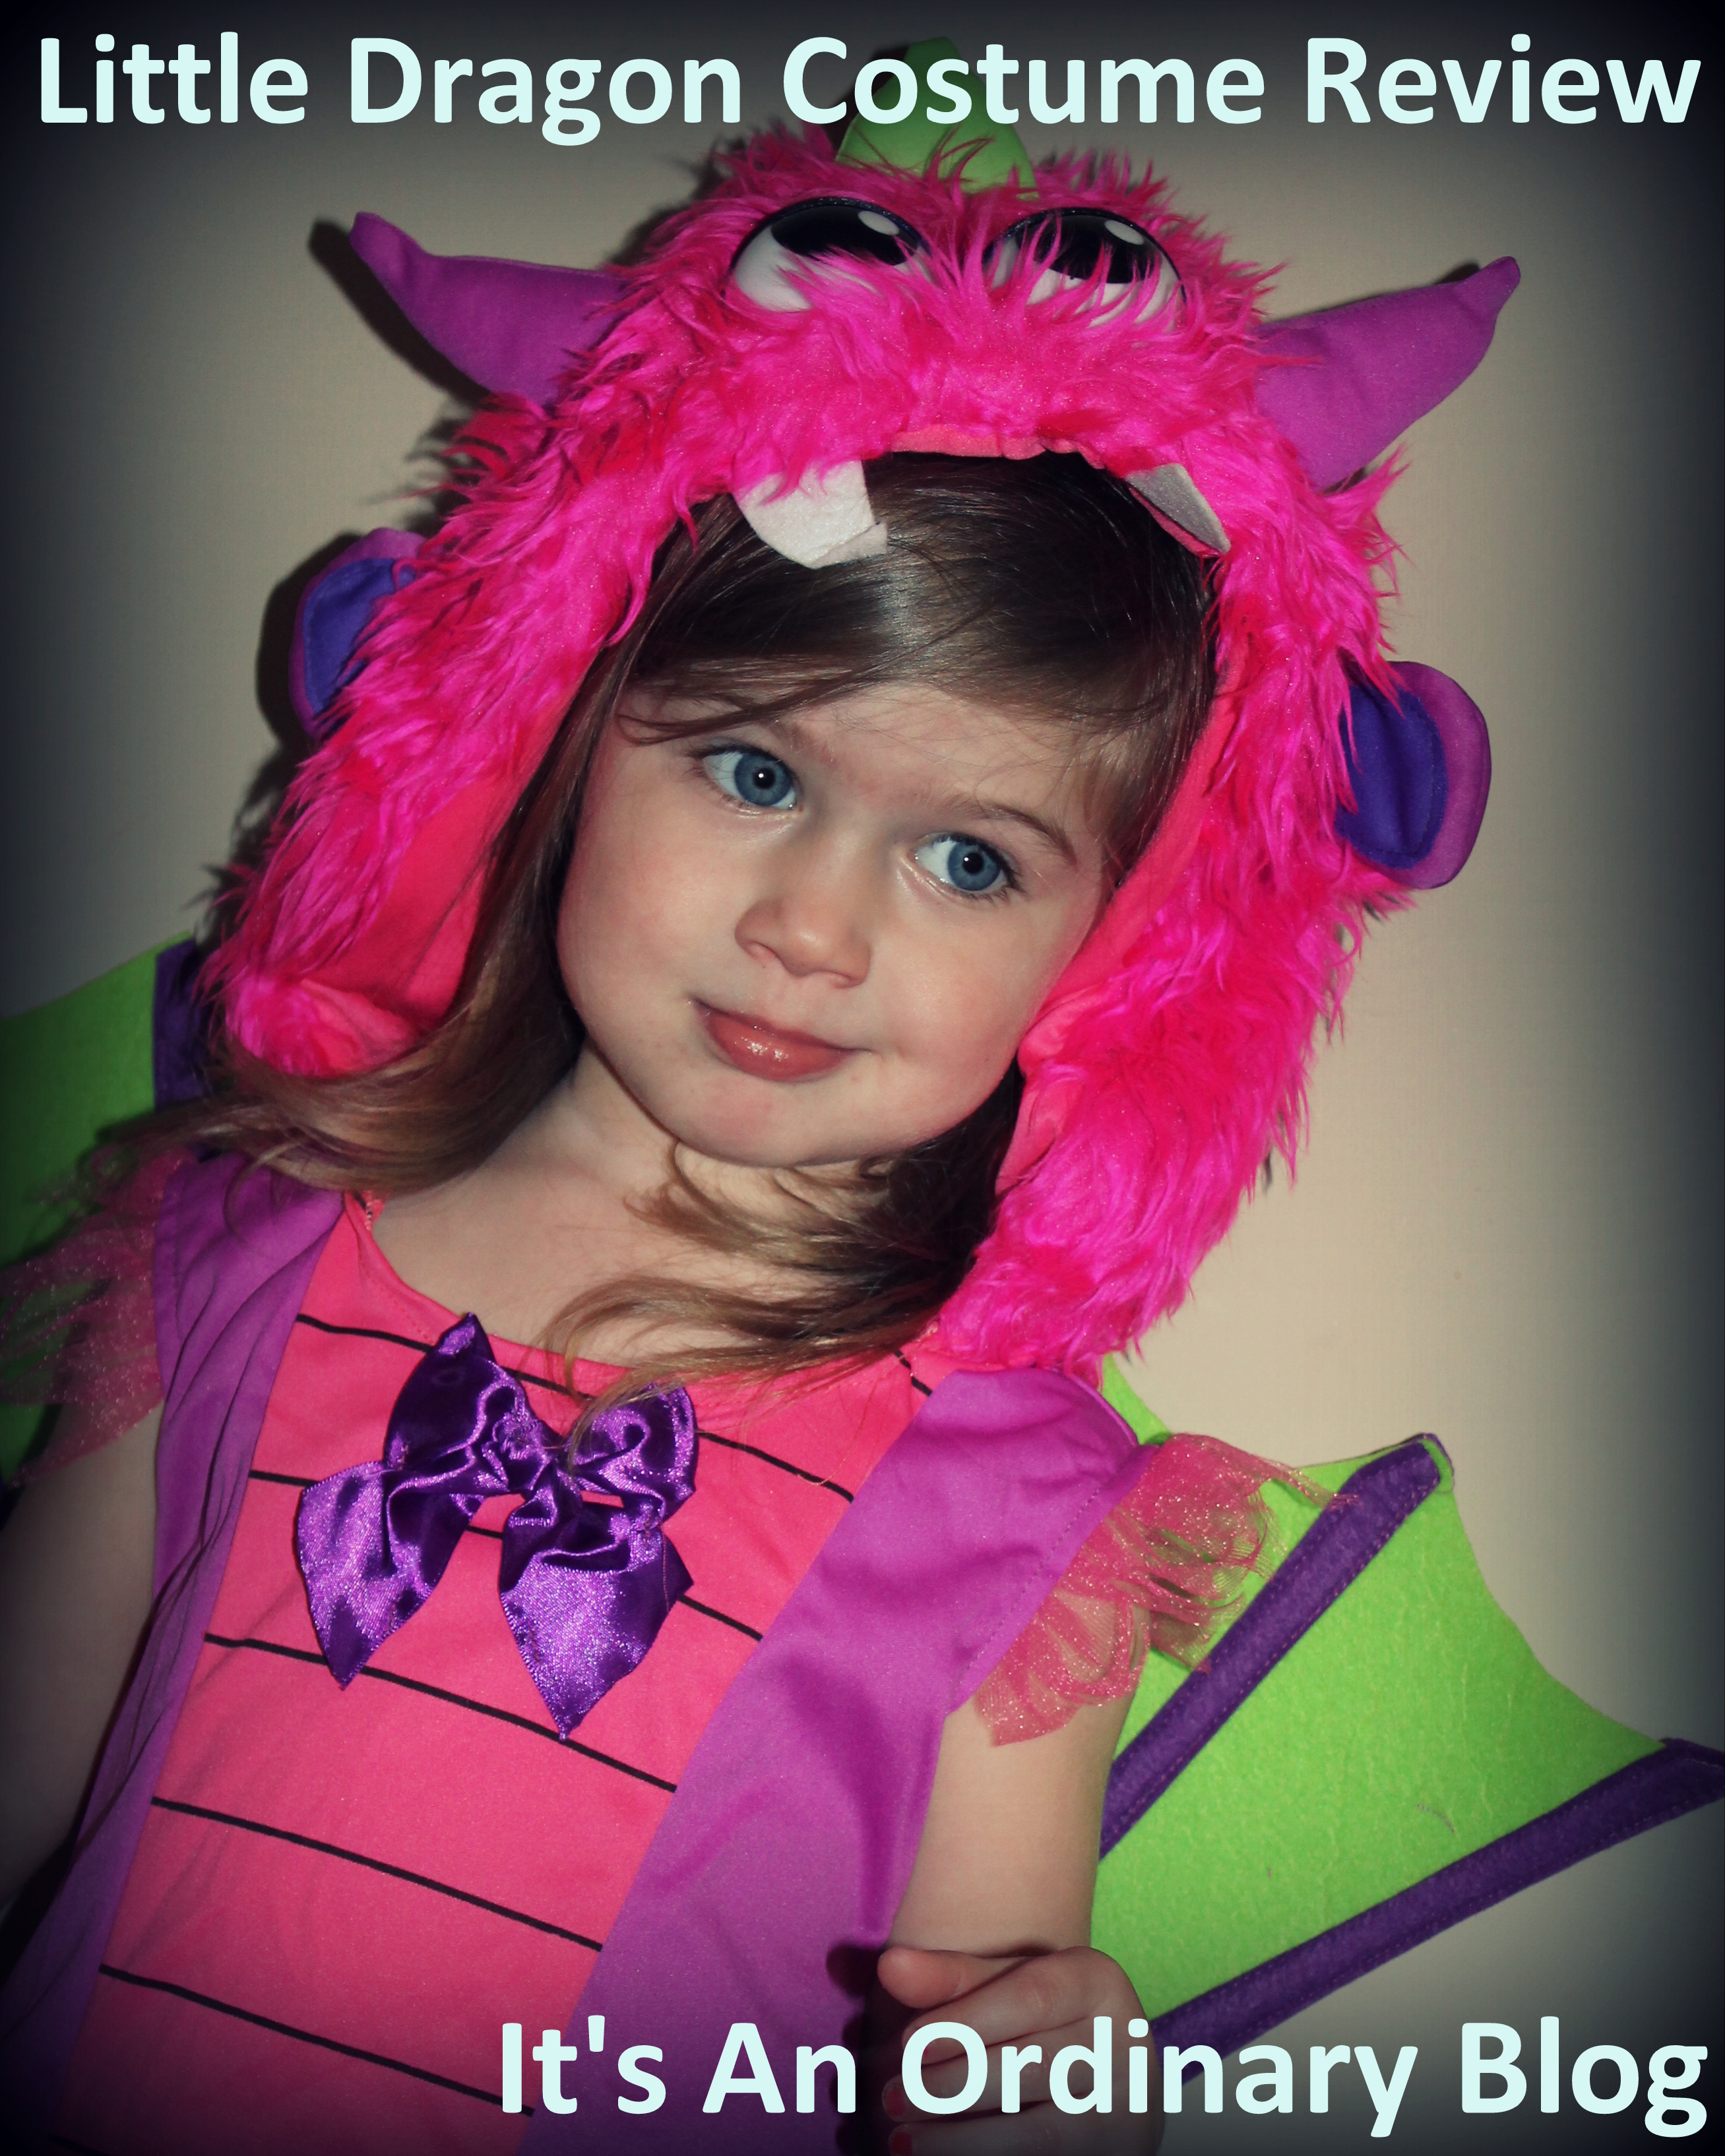 Discount Toddler Costumes  sc 1 st  An Ordinary Blog & Costume Discounters: Little Dragon Costume In Review! u2013 An Ordinary Blog